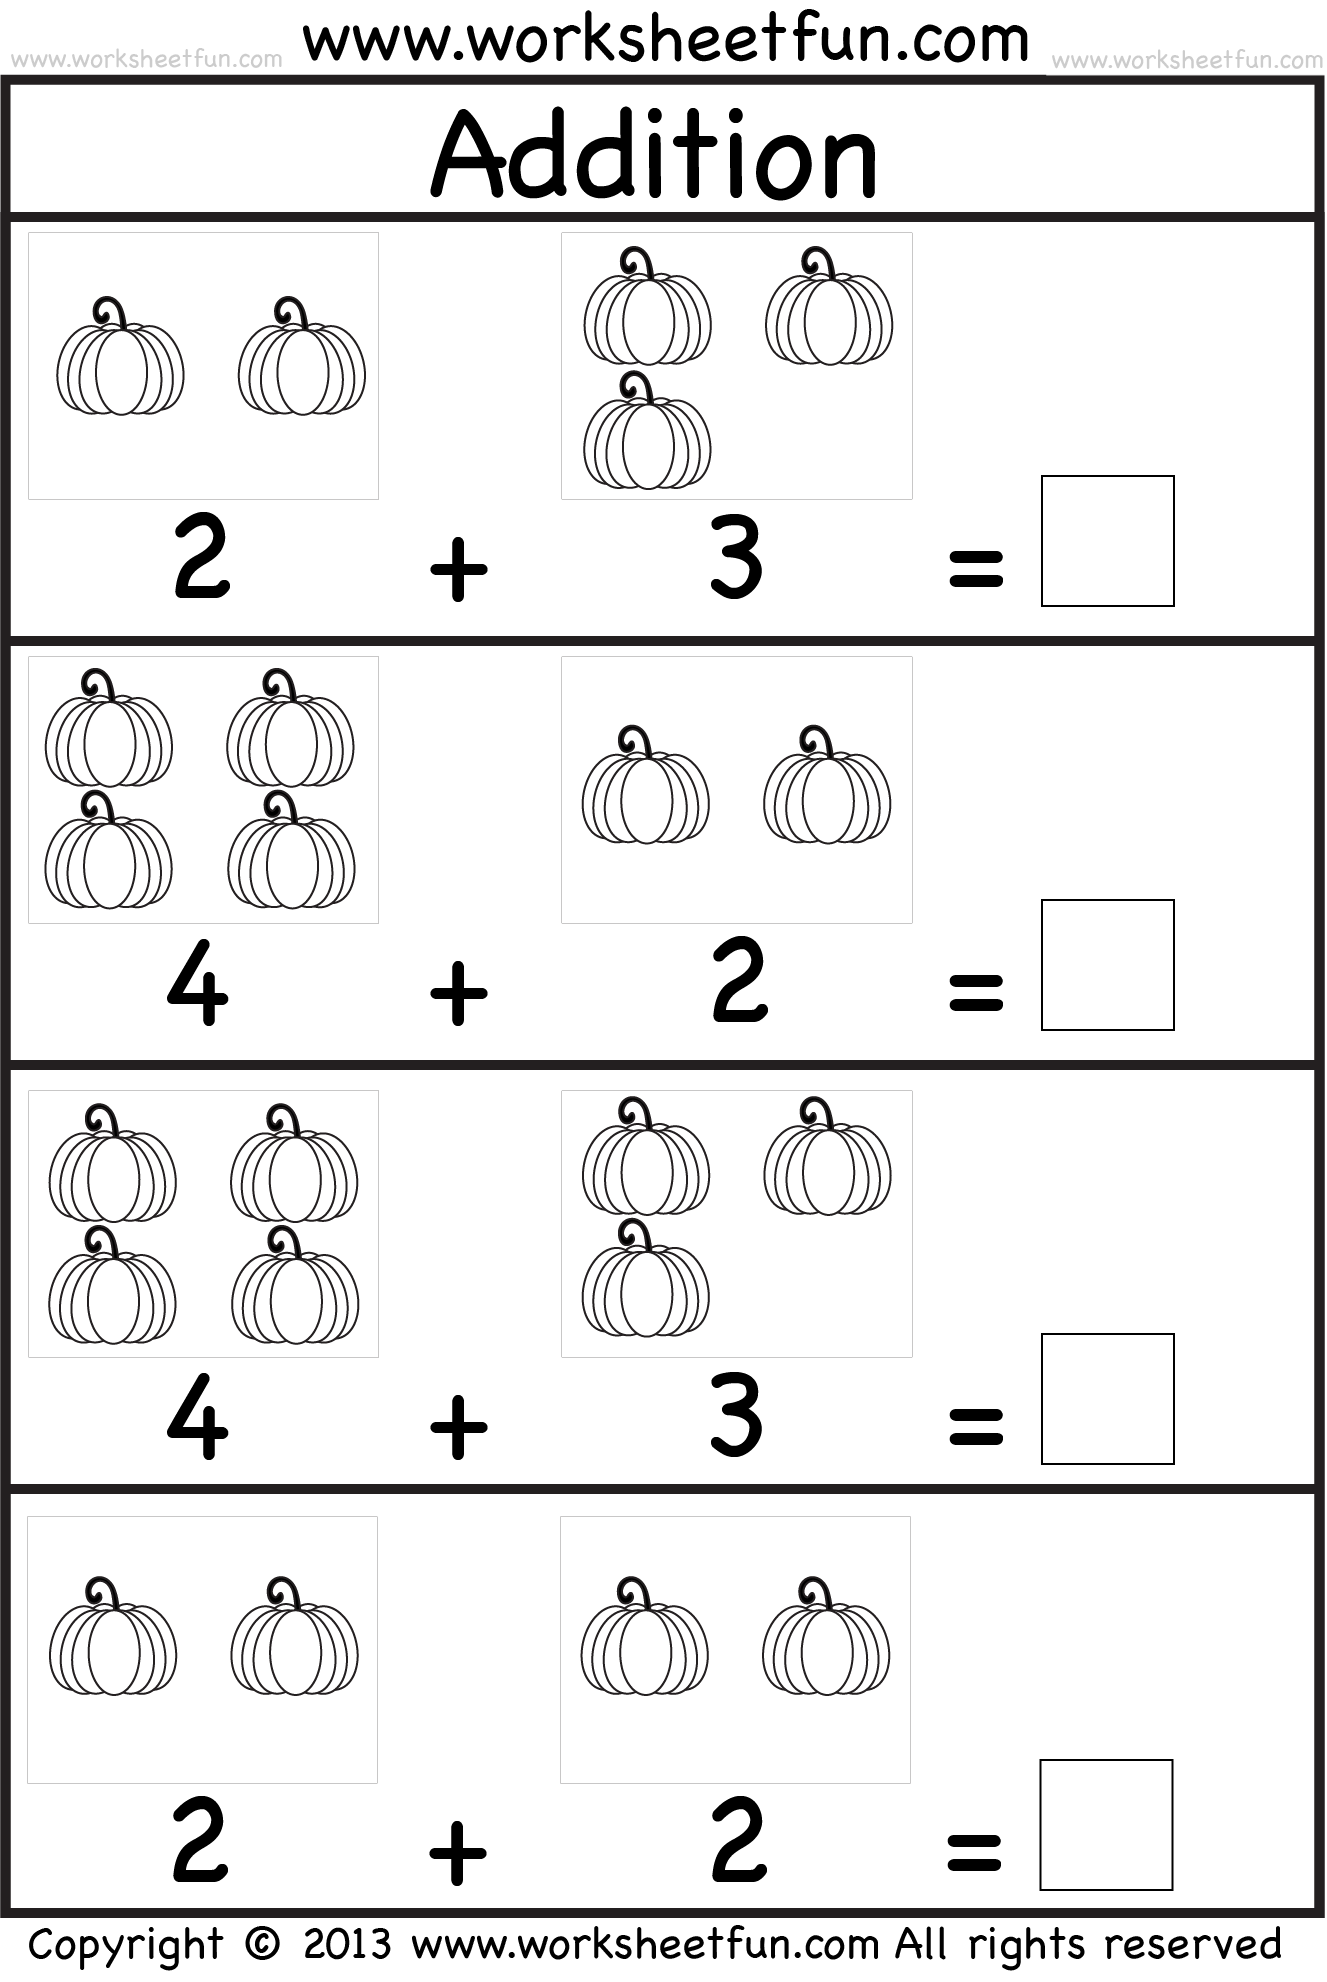 Worksheet For Preschoolers Addition